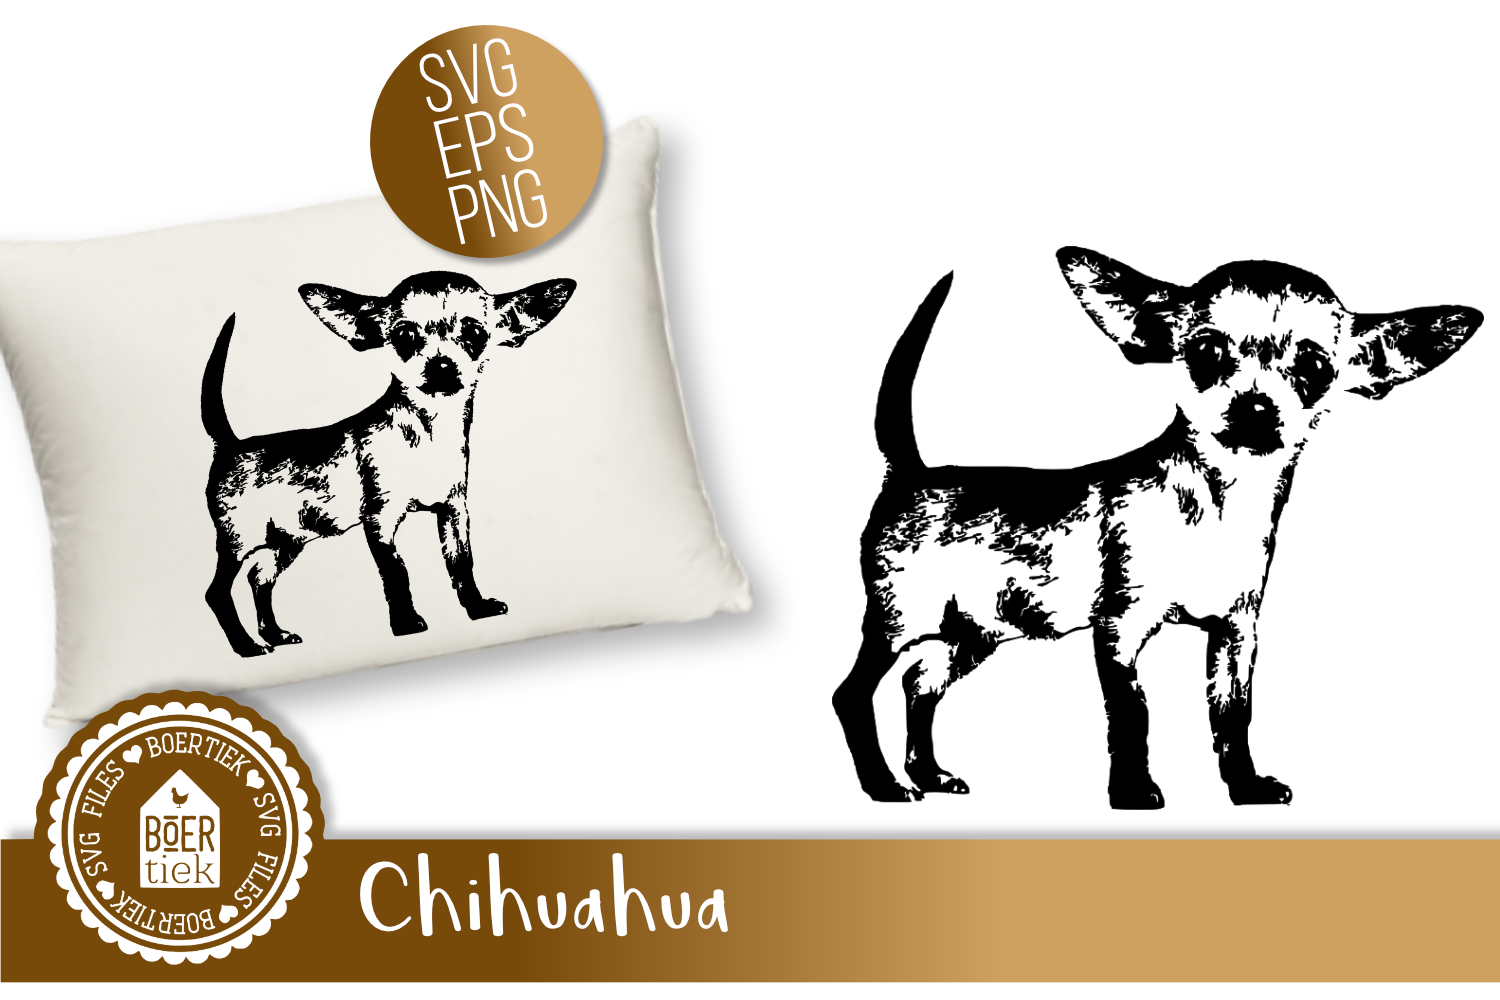 Chihuahua, SVG cutting file example image 1